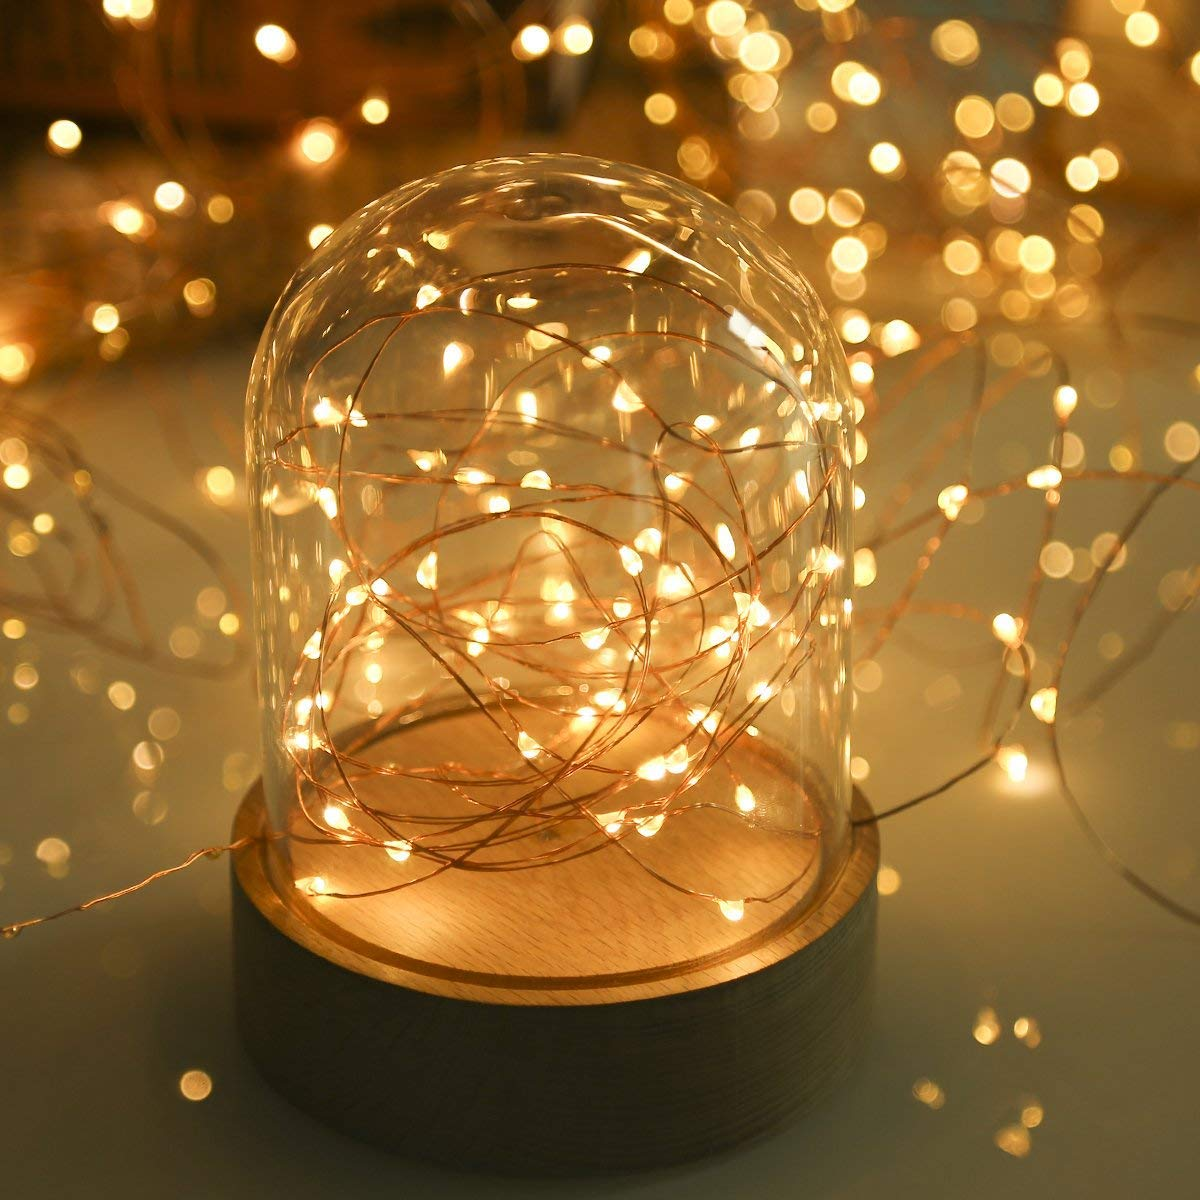 TryLight LED String Lights, 20M 200 LED Copper Wire Fairy Lights with Wireless Remote Control, Battery Powered, Waterproof for Patio, Garden, Home, Pathway, Party, Wedding [Energy Class A++]